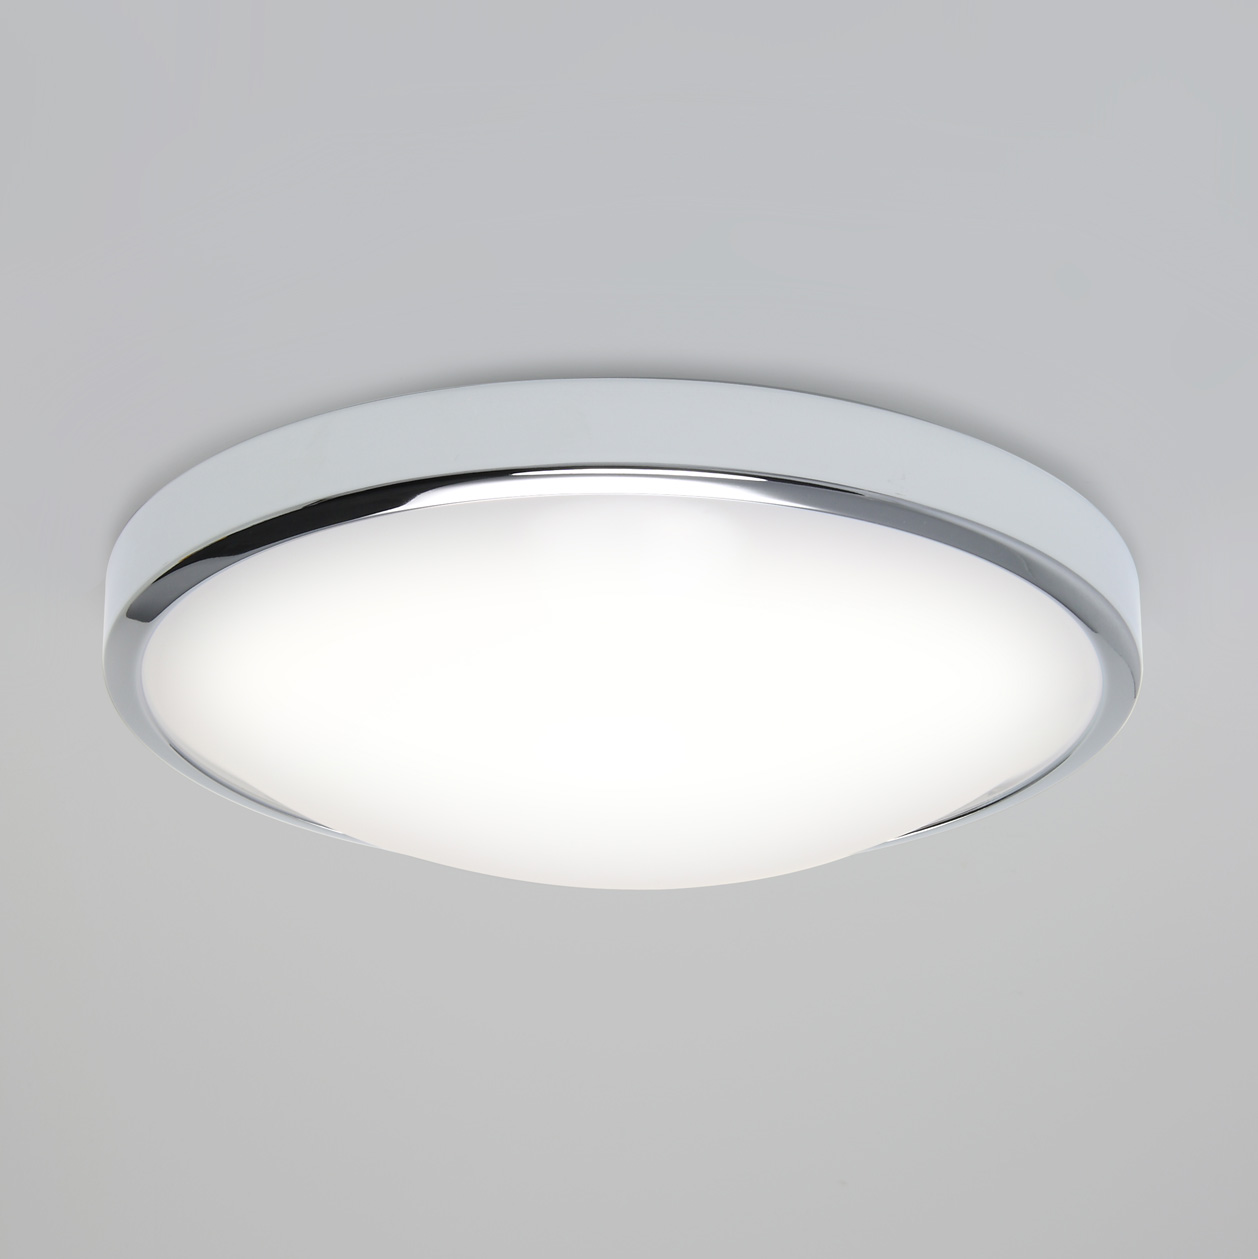 Astro Osaka 0387 bathroom  round low energy ceiling wall light 28W IP44 chrome Thumbnail 1